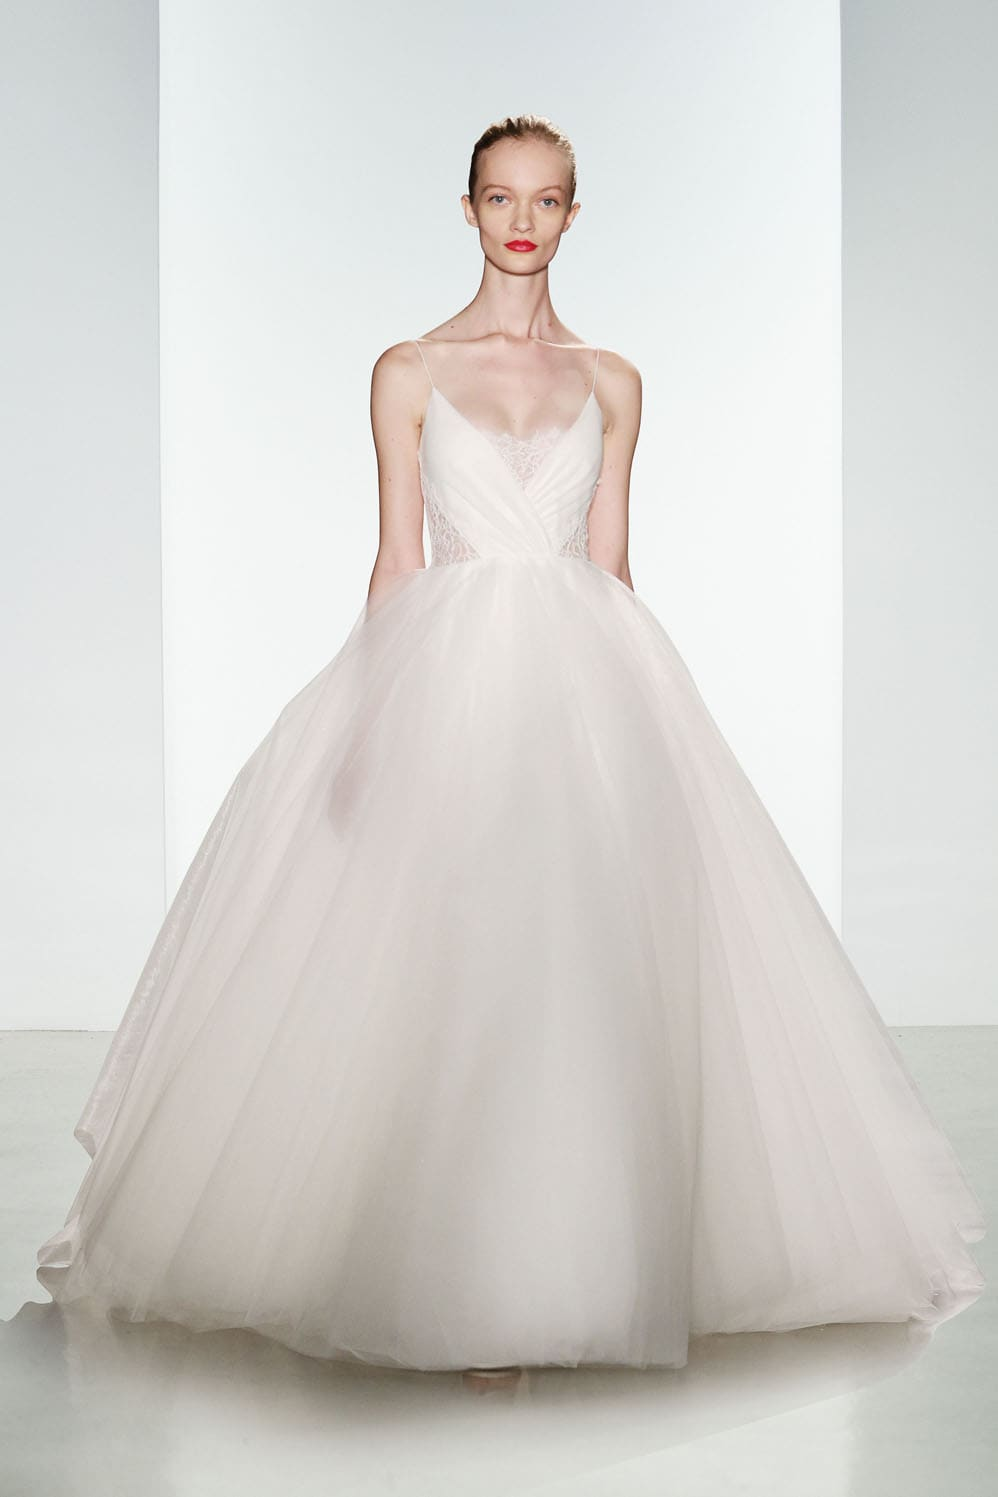 Penny by christos tulle ballgown wedding dress for Picture of a wedding dress